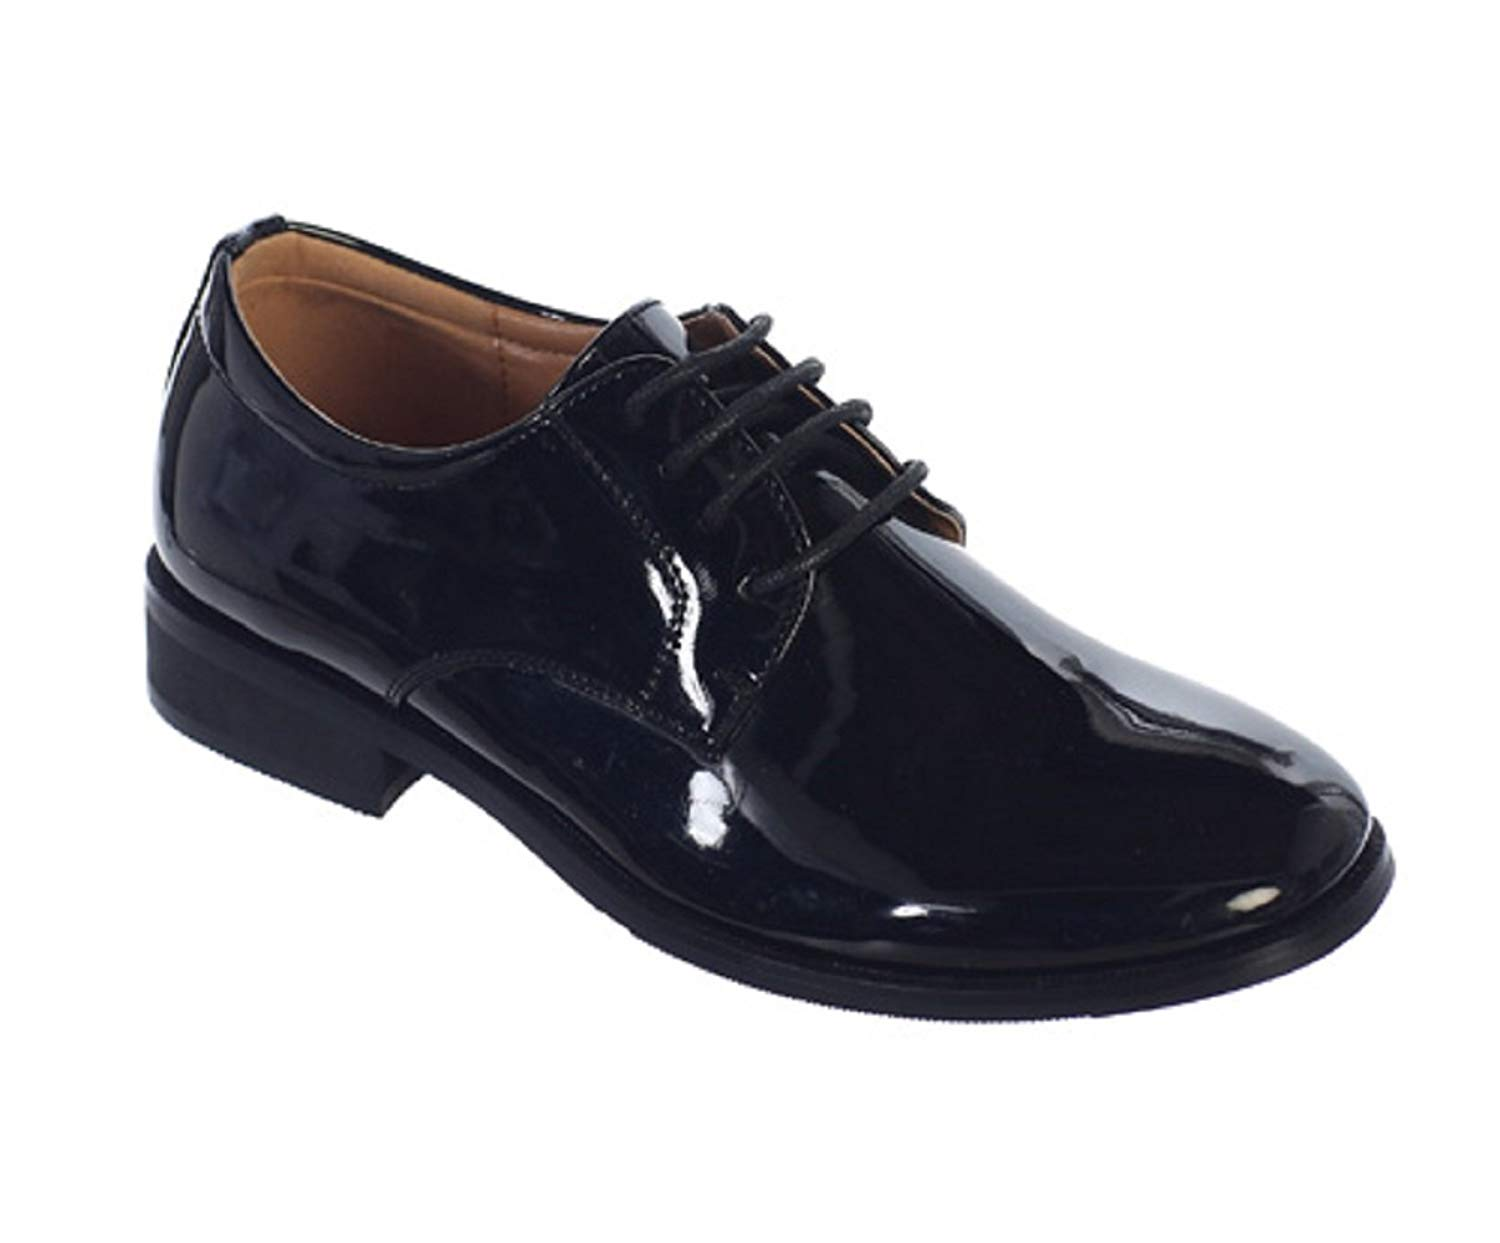 37dcebc89d636 Get Quotations · OLIVIA KOO Boys Classic Oxford Dress Shoes (Size Toddler 5  To Boy Youth 5)